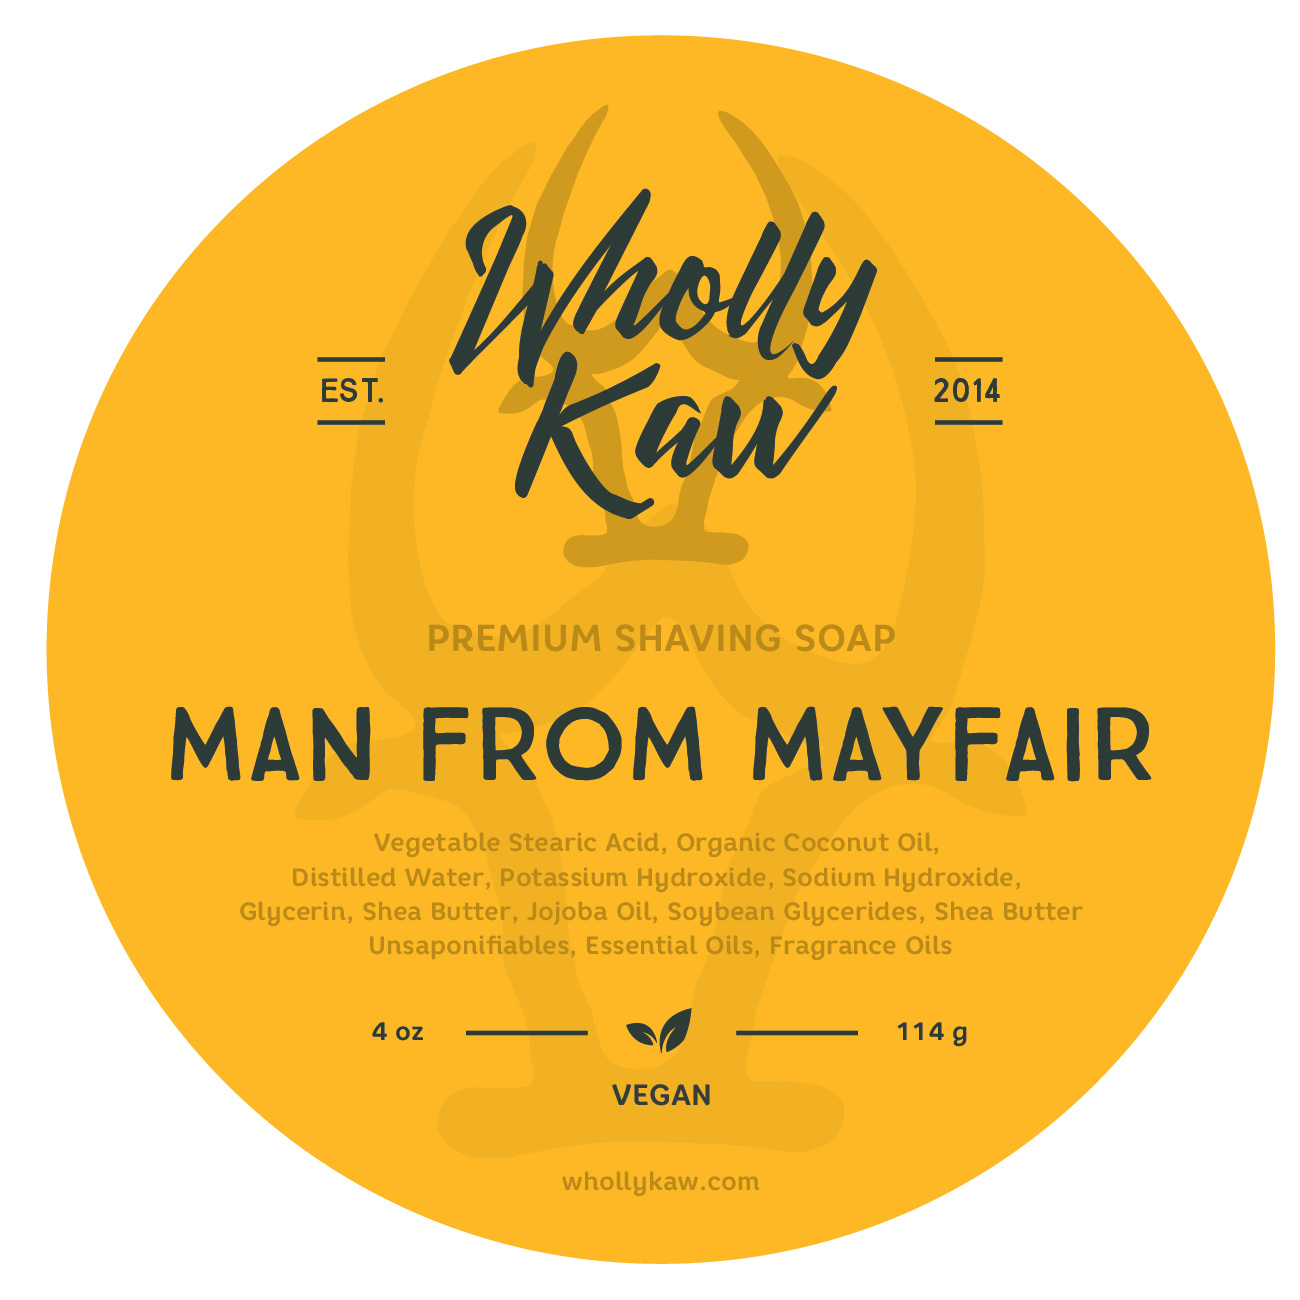 Wholly Kaw - Man From Mayfair - Soap (Vegan) image